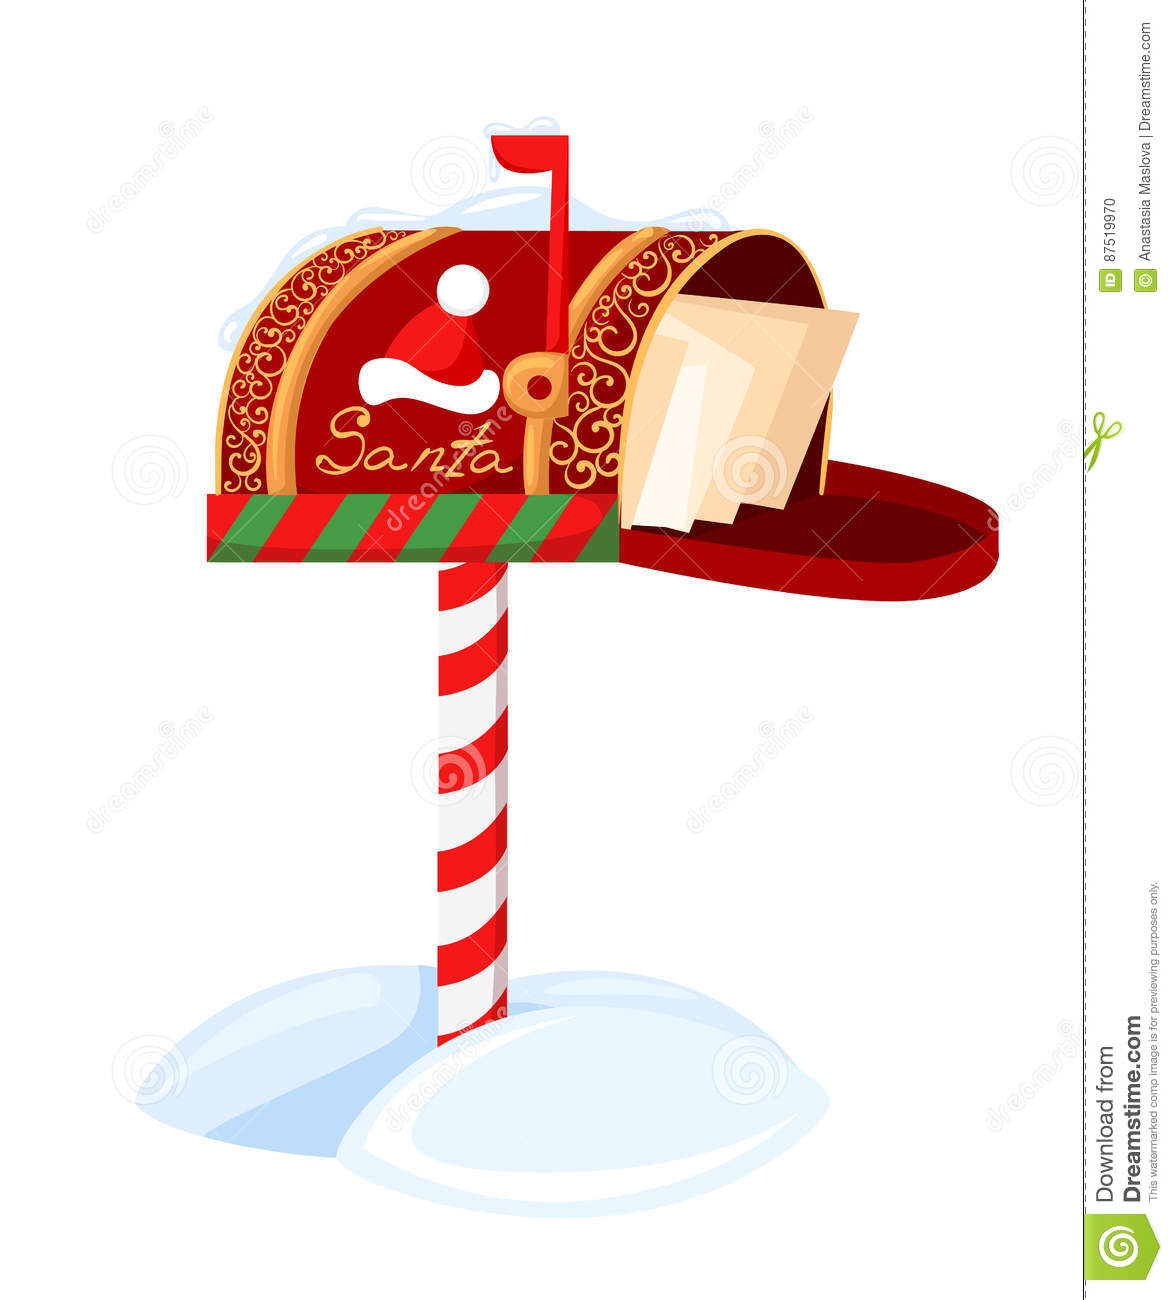 Santa S Mailbox Vector Illustration Of A Letter For Santa Claus